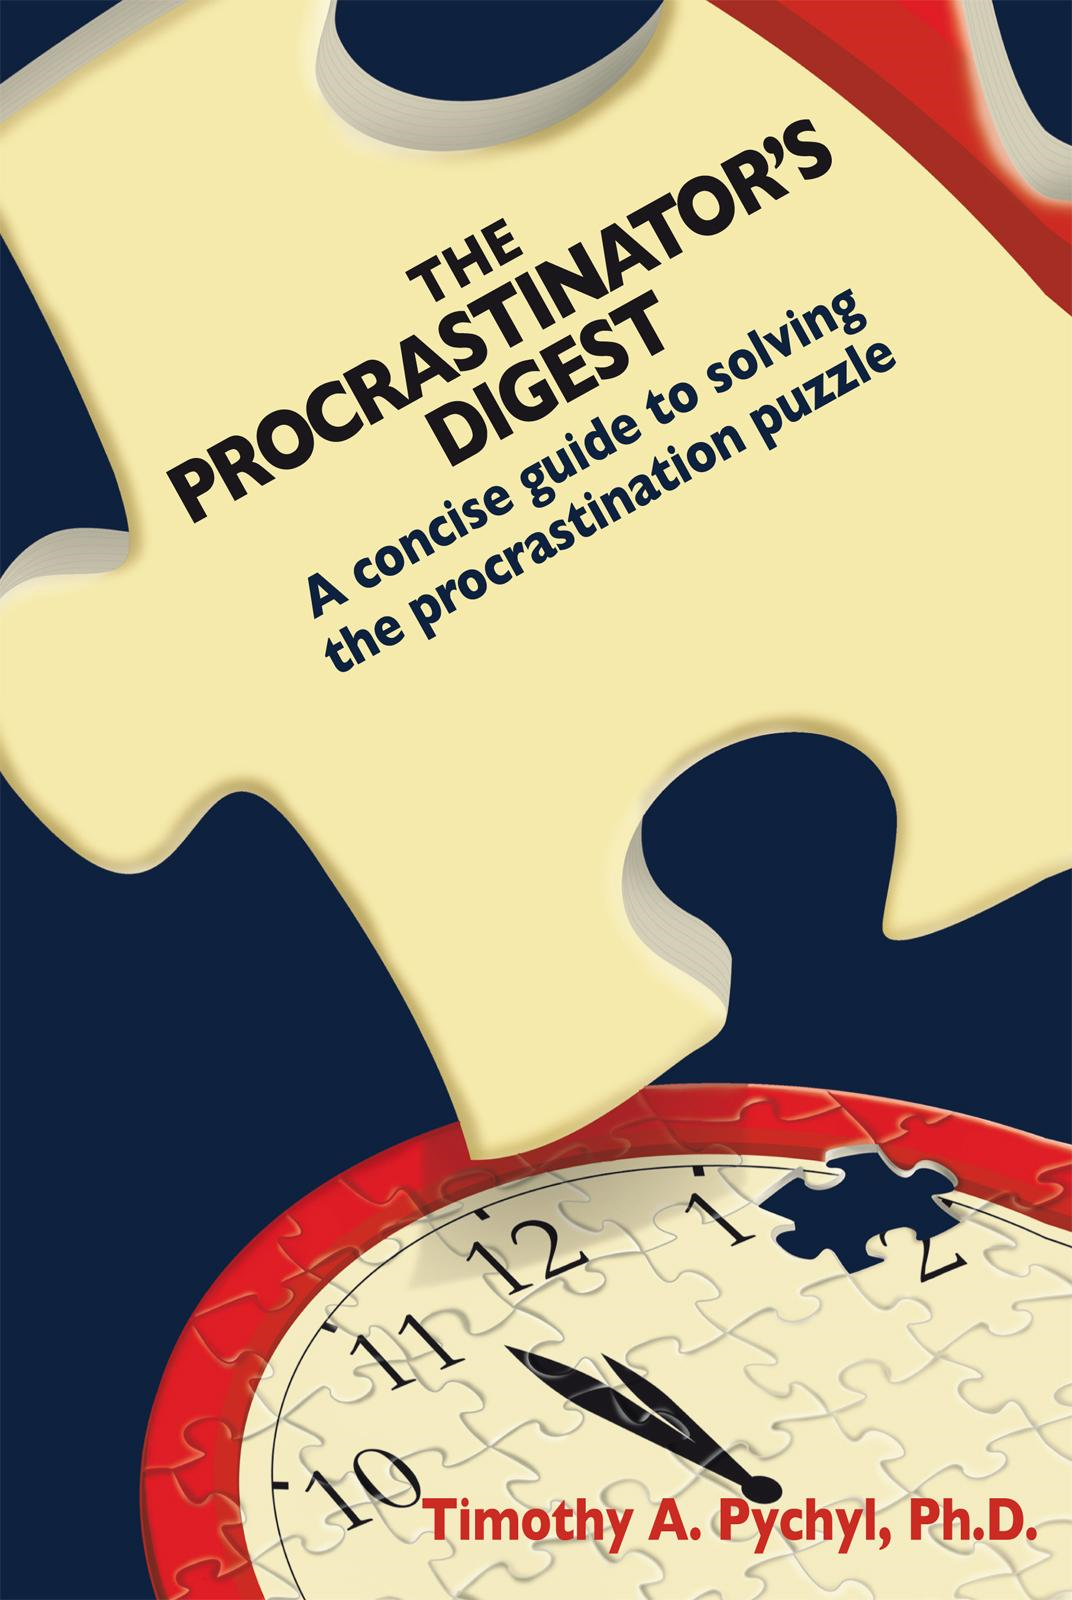 The Procrastinator's Digest